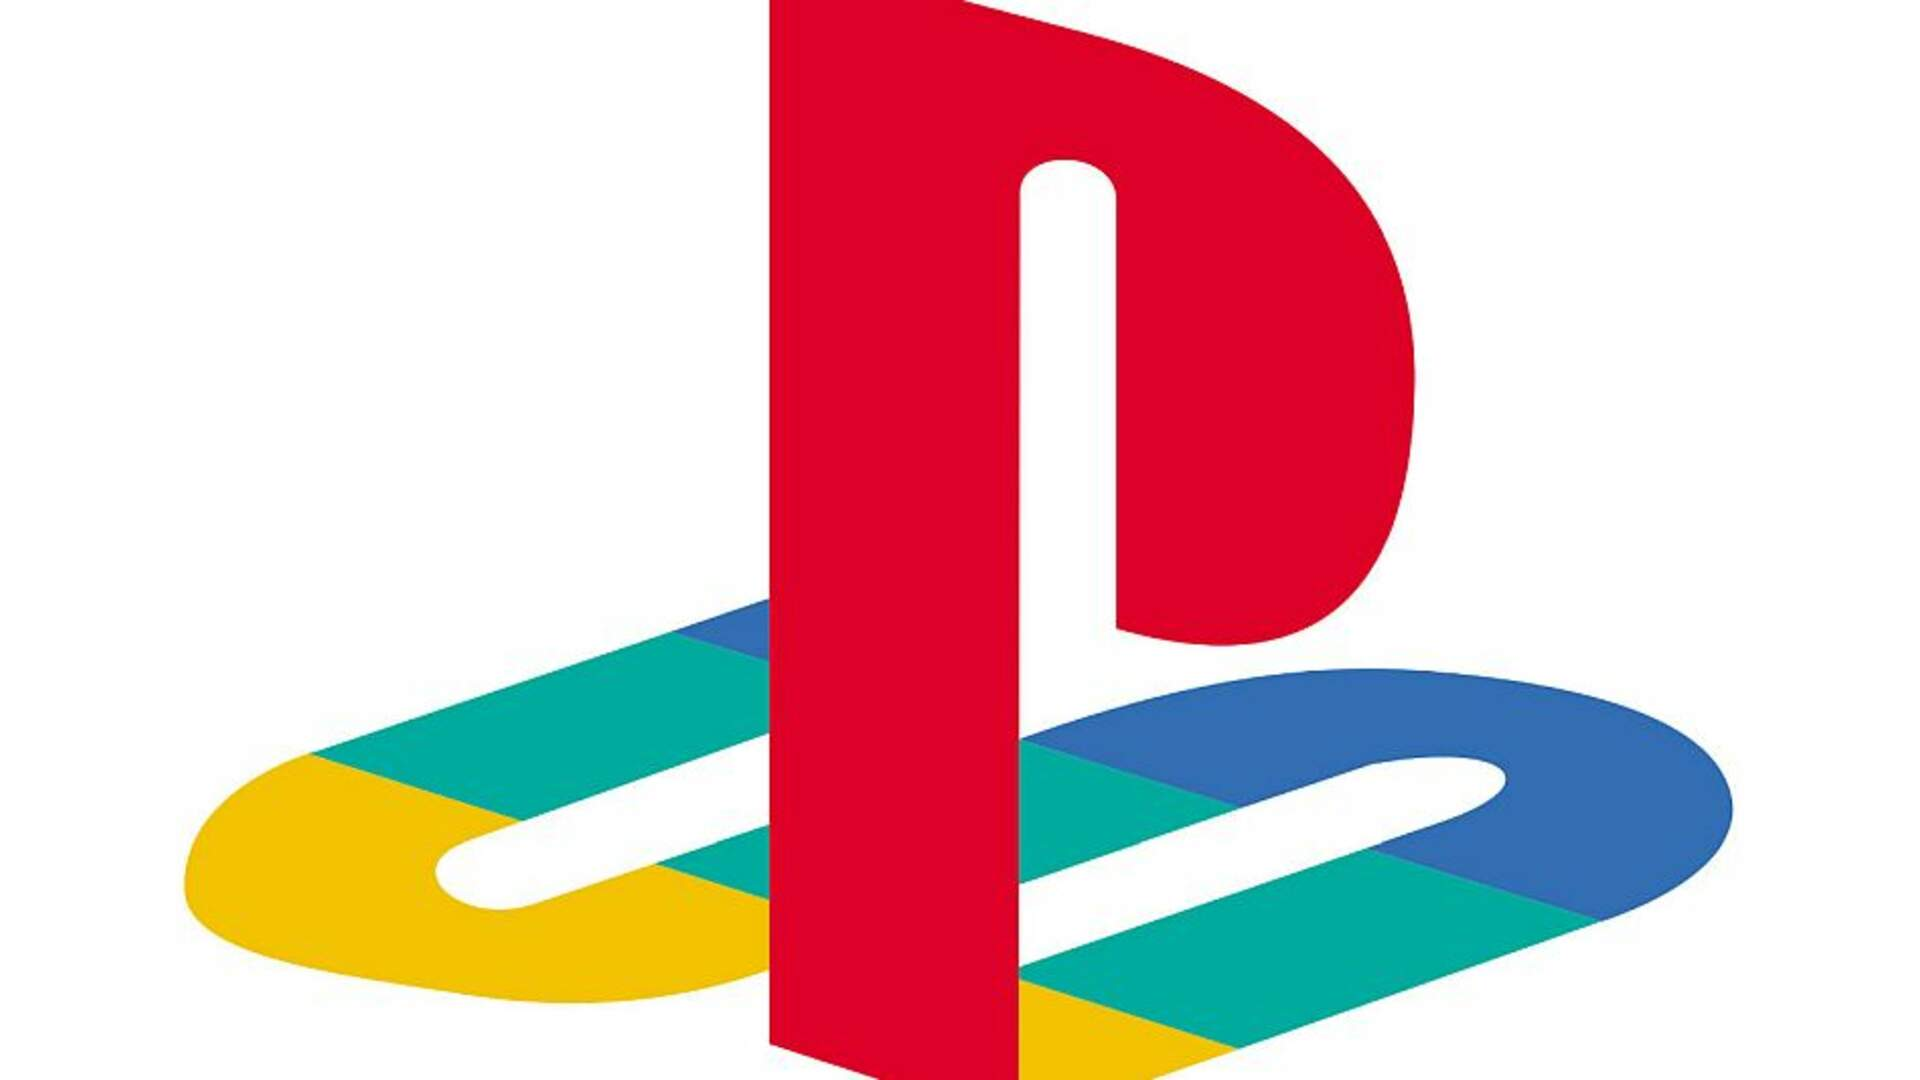 PlayStation to Launch Nintendo Direct-Alike, State of Play, on March 25